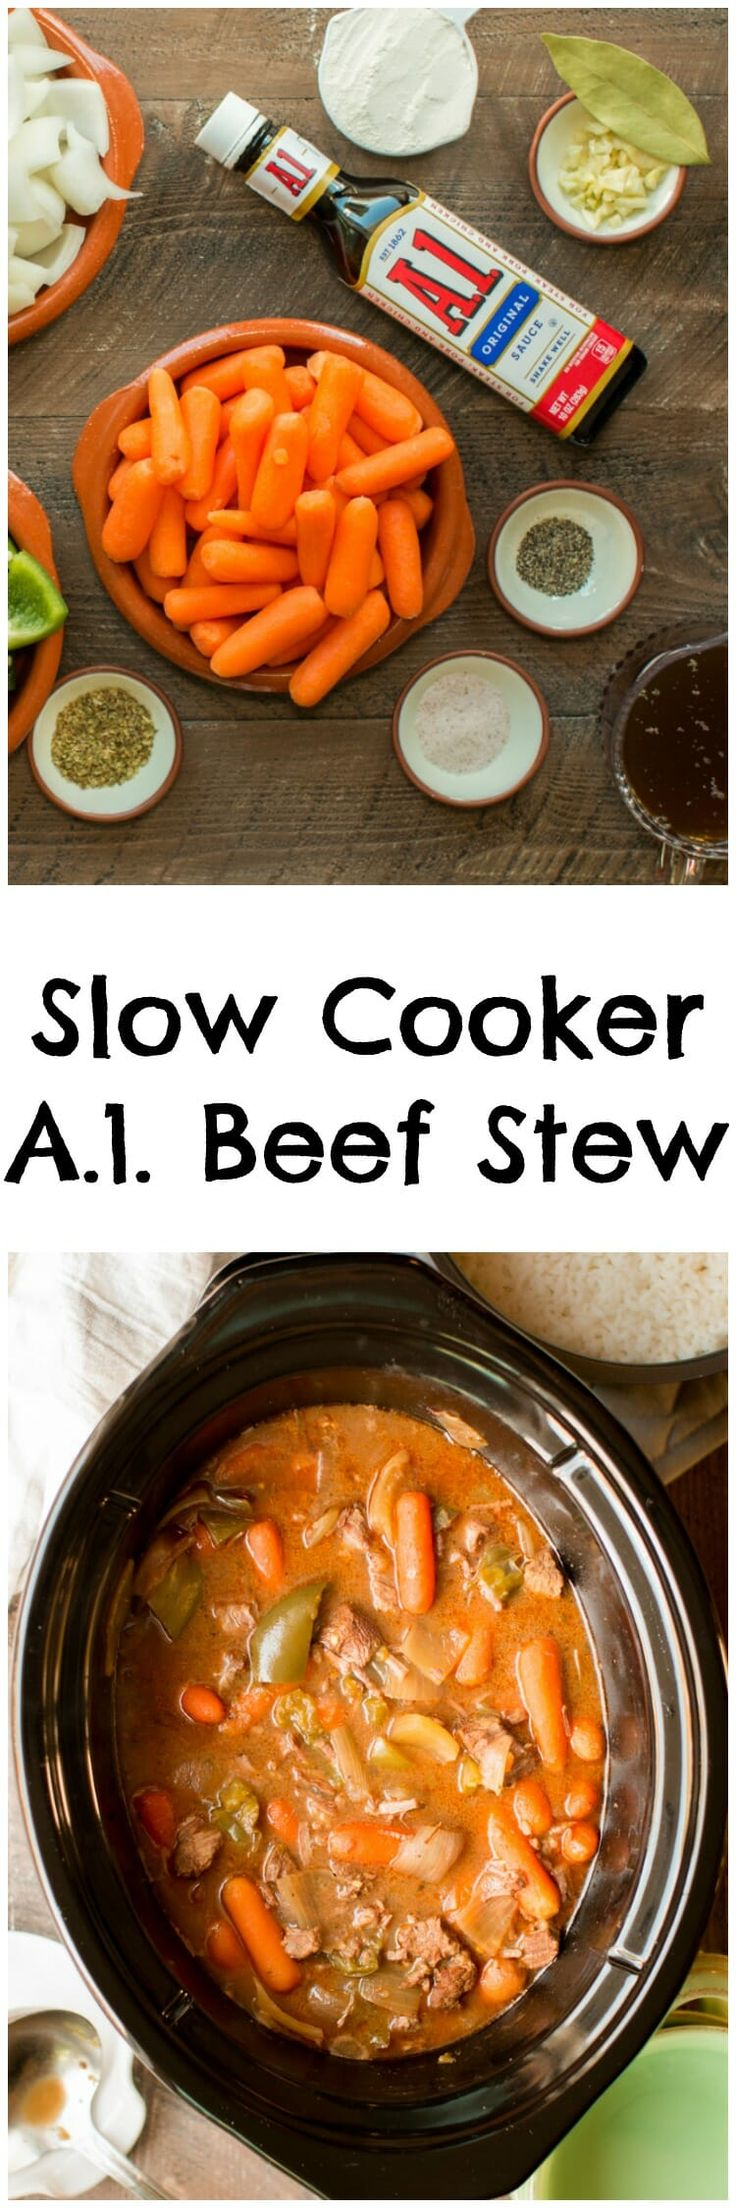 Slow Cooker A.1. Beef Stew